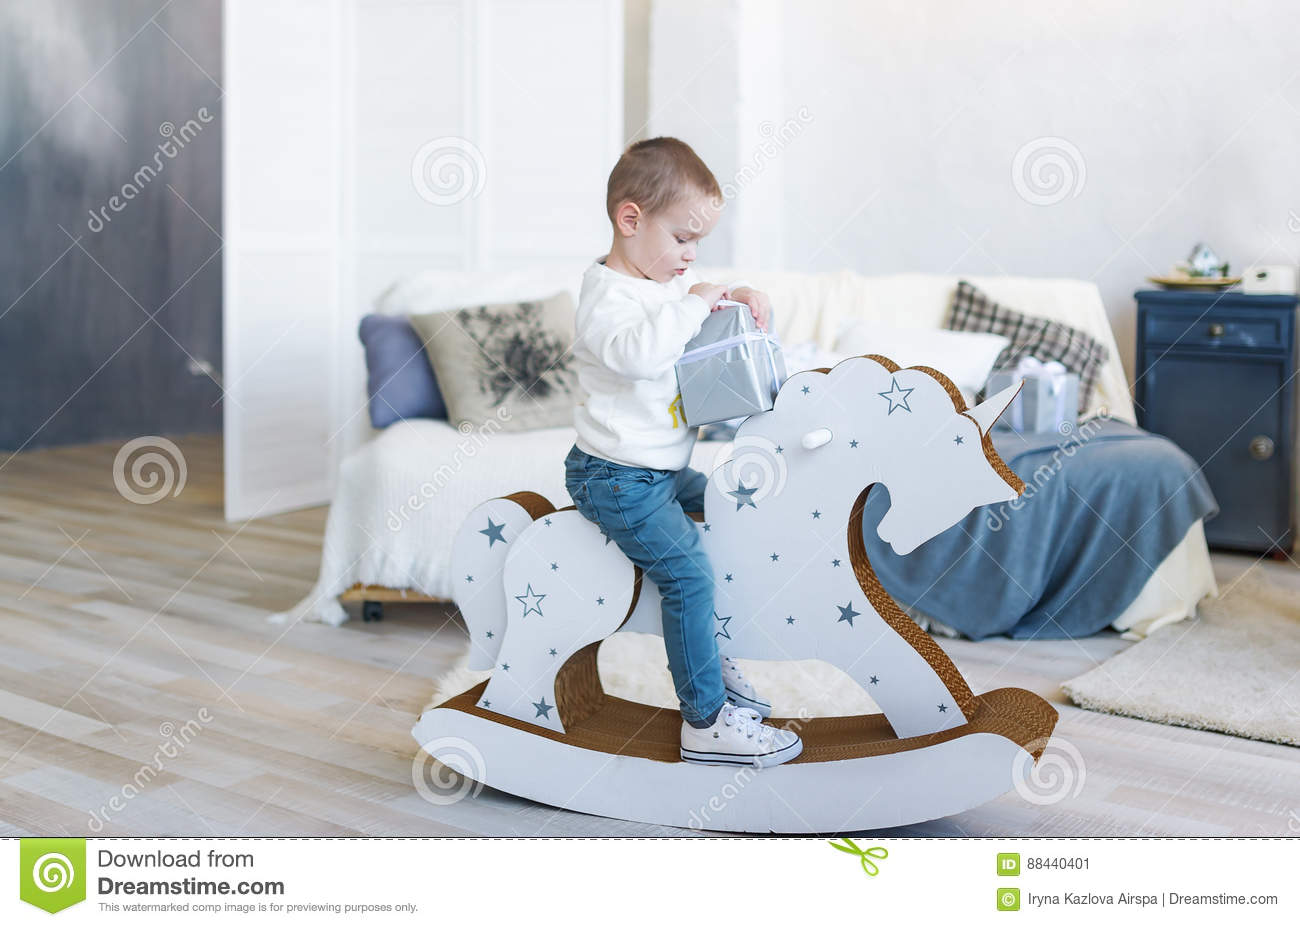 Baby Bedroom In A Box Special: Cute Baby Boy Riding Wooden Traditional Rocking Horse Toy